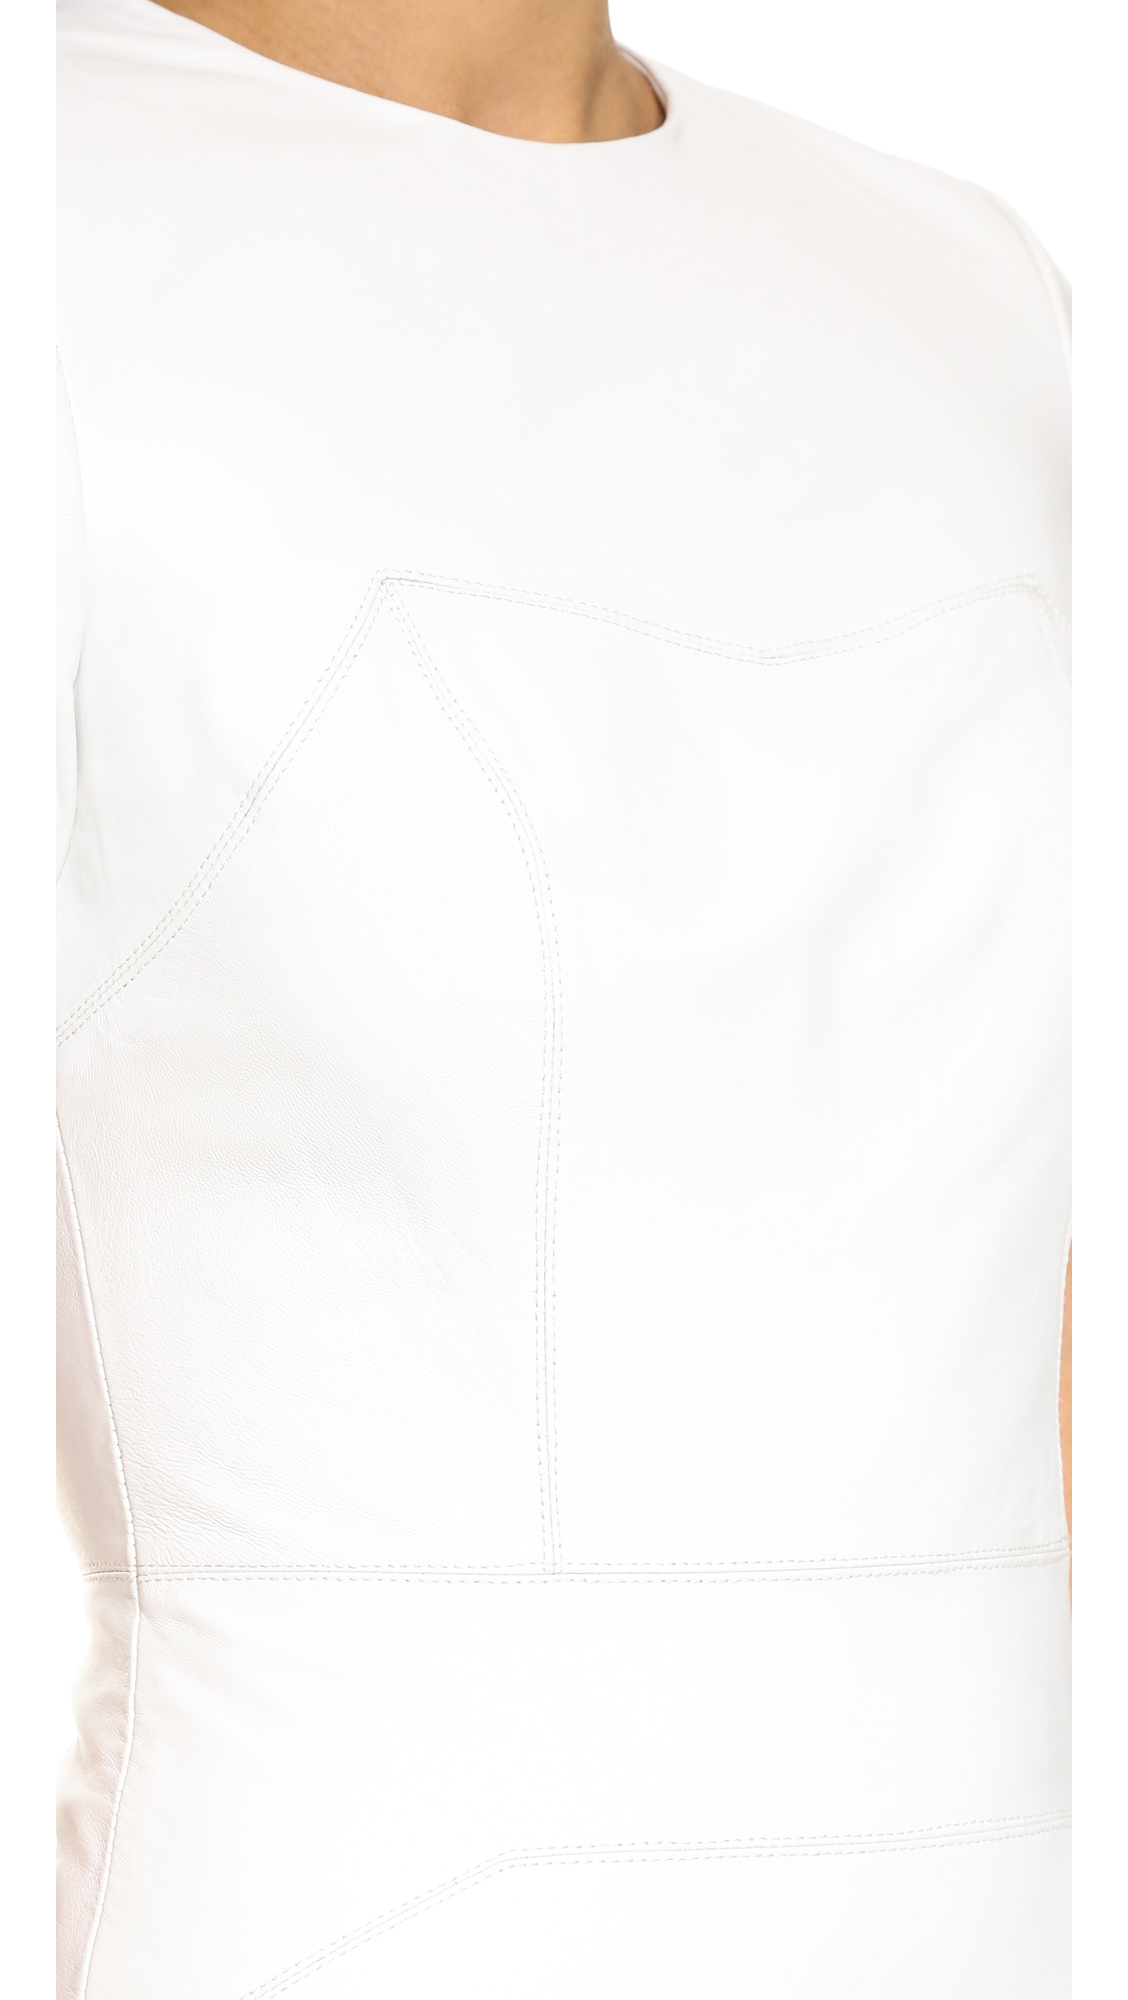 8a38e8df55c Kendall + Kylie Leather Short Sleeve Dress in White - Lyst